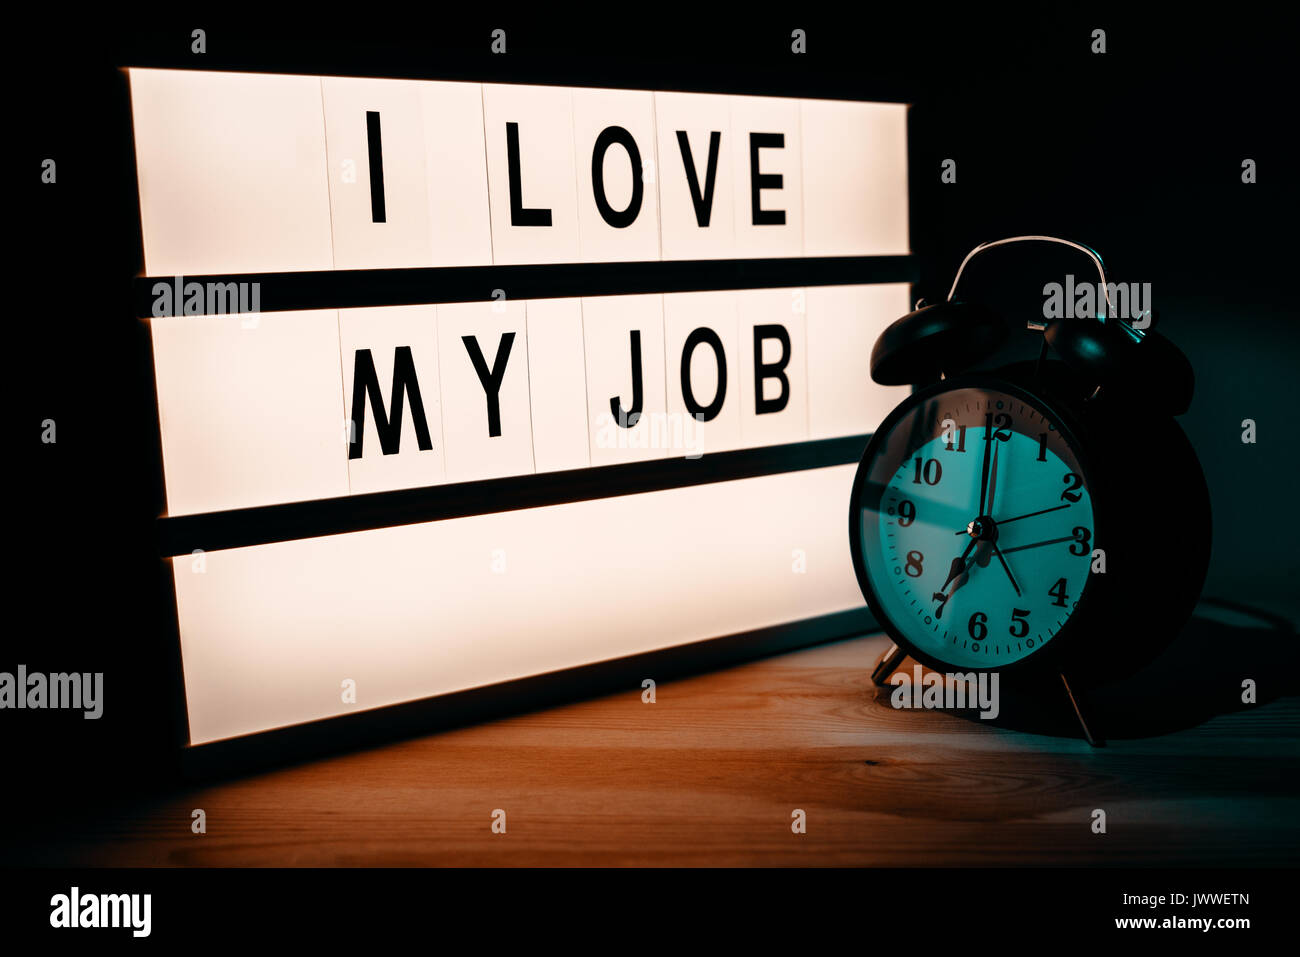 I love my job, business and occupation motivational message on lightbox in the office next to the vintage style clock - Stock Image